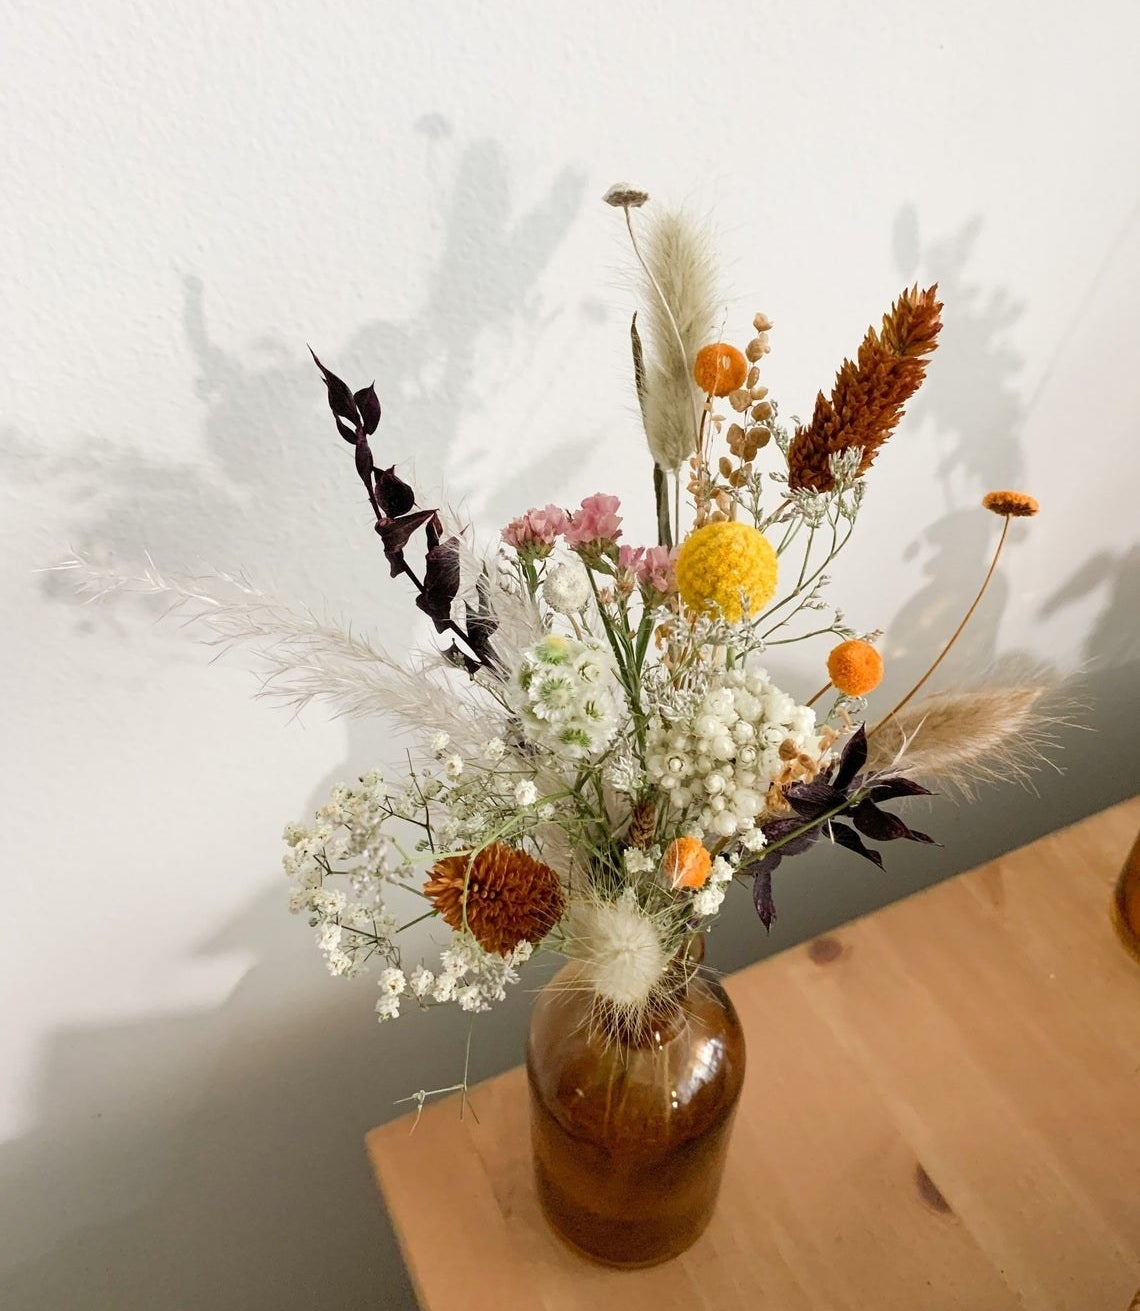 Several different stems of flowers arranged in an amber bottle